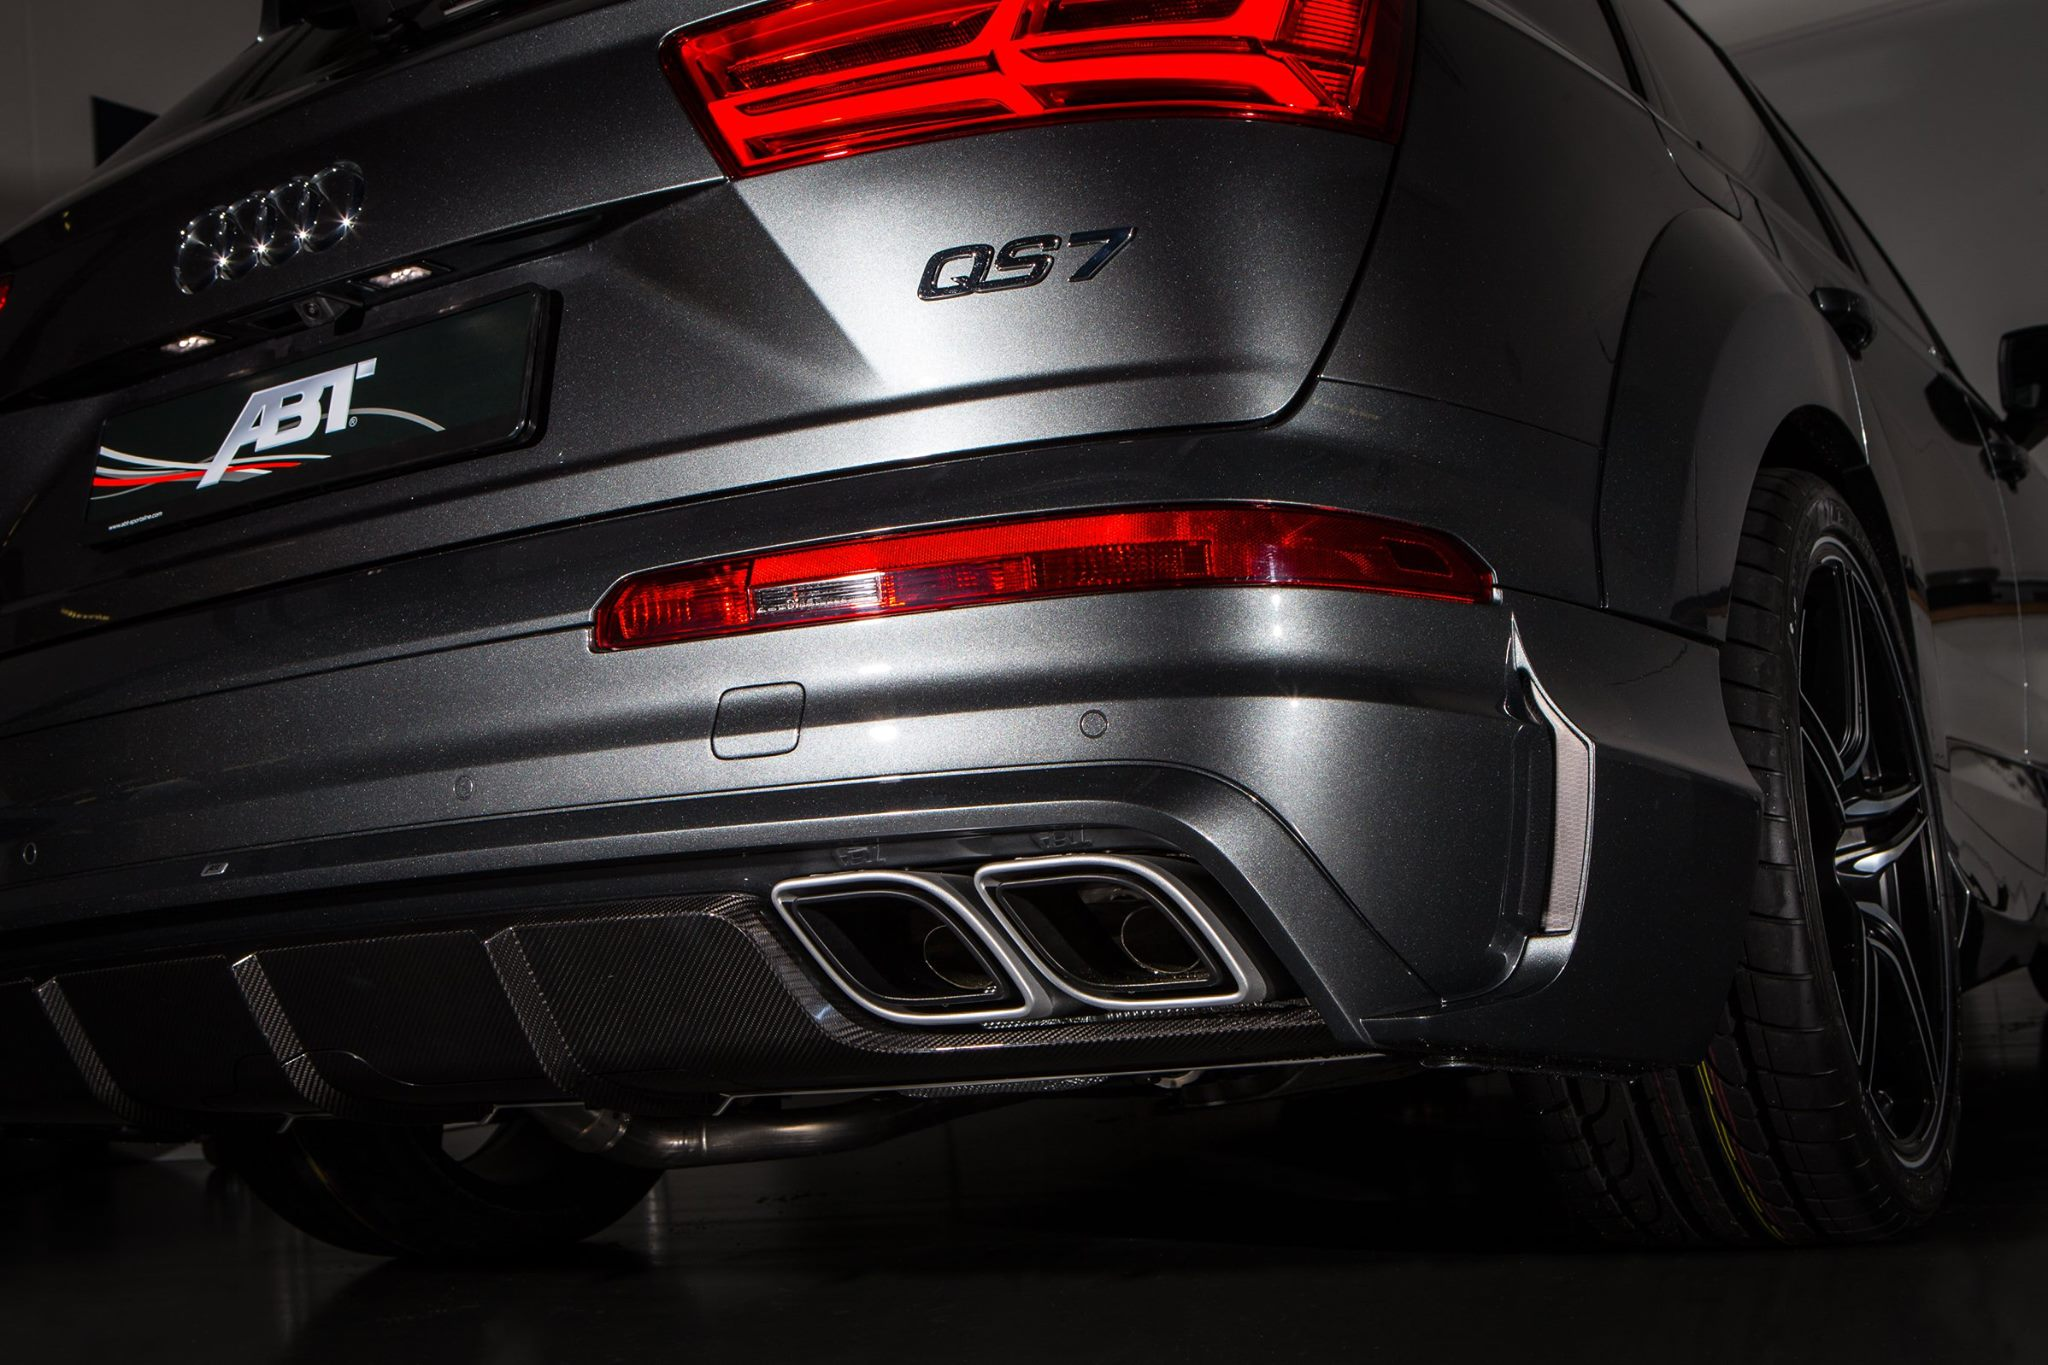 Audi Q7 Tuned by ABT Has Carbon Fiber Seats and Wider Body - autoevolution